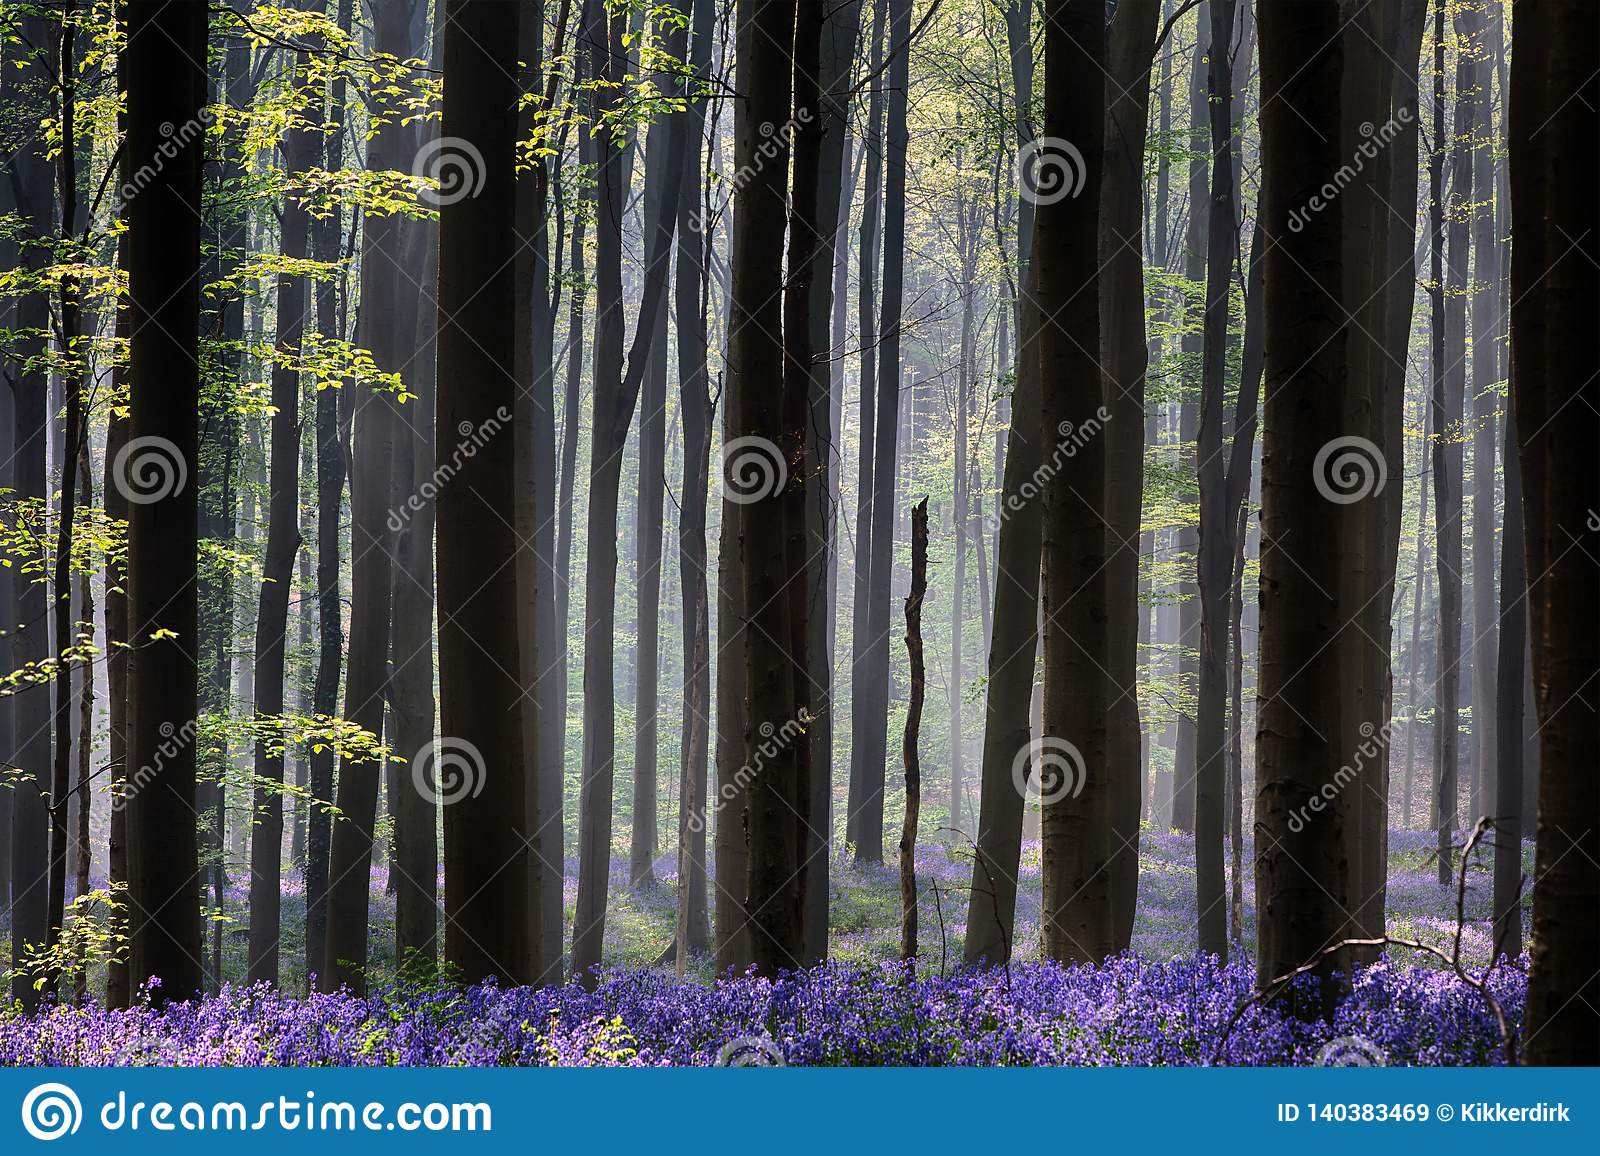 Early morning first sun light awakening the spring forest covered with violet bluebell wild flowers